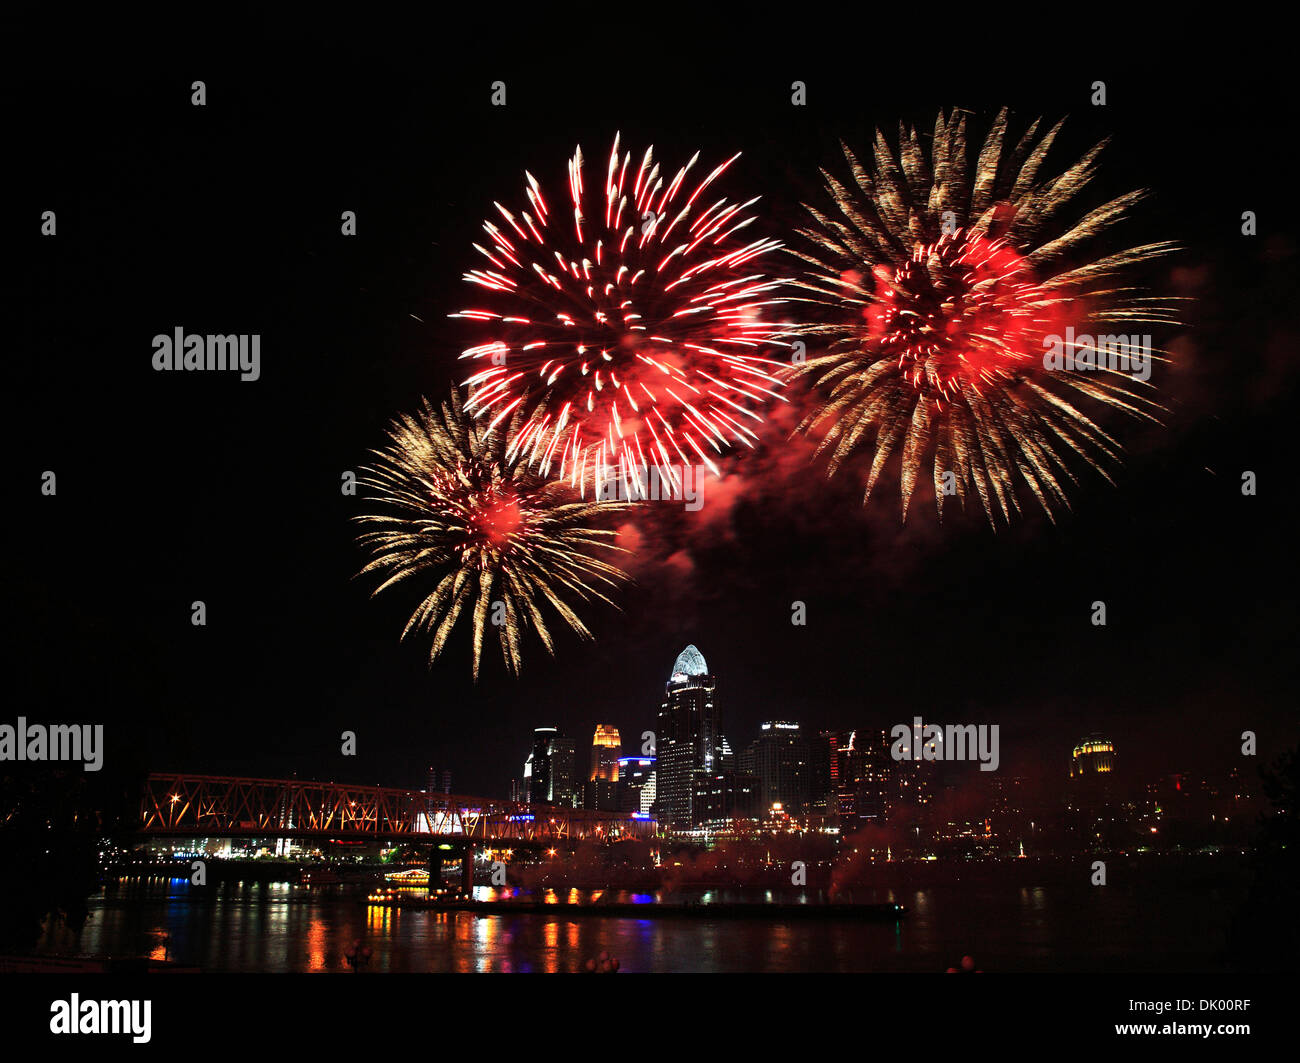 Fireworks Bursting Over The City Of Cincinnati And The Ohio River During The Labor Day Fireworks Show, 2013,, USA - Stock Image